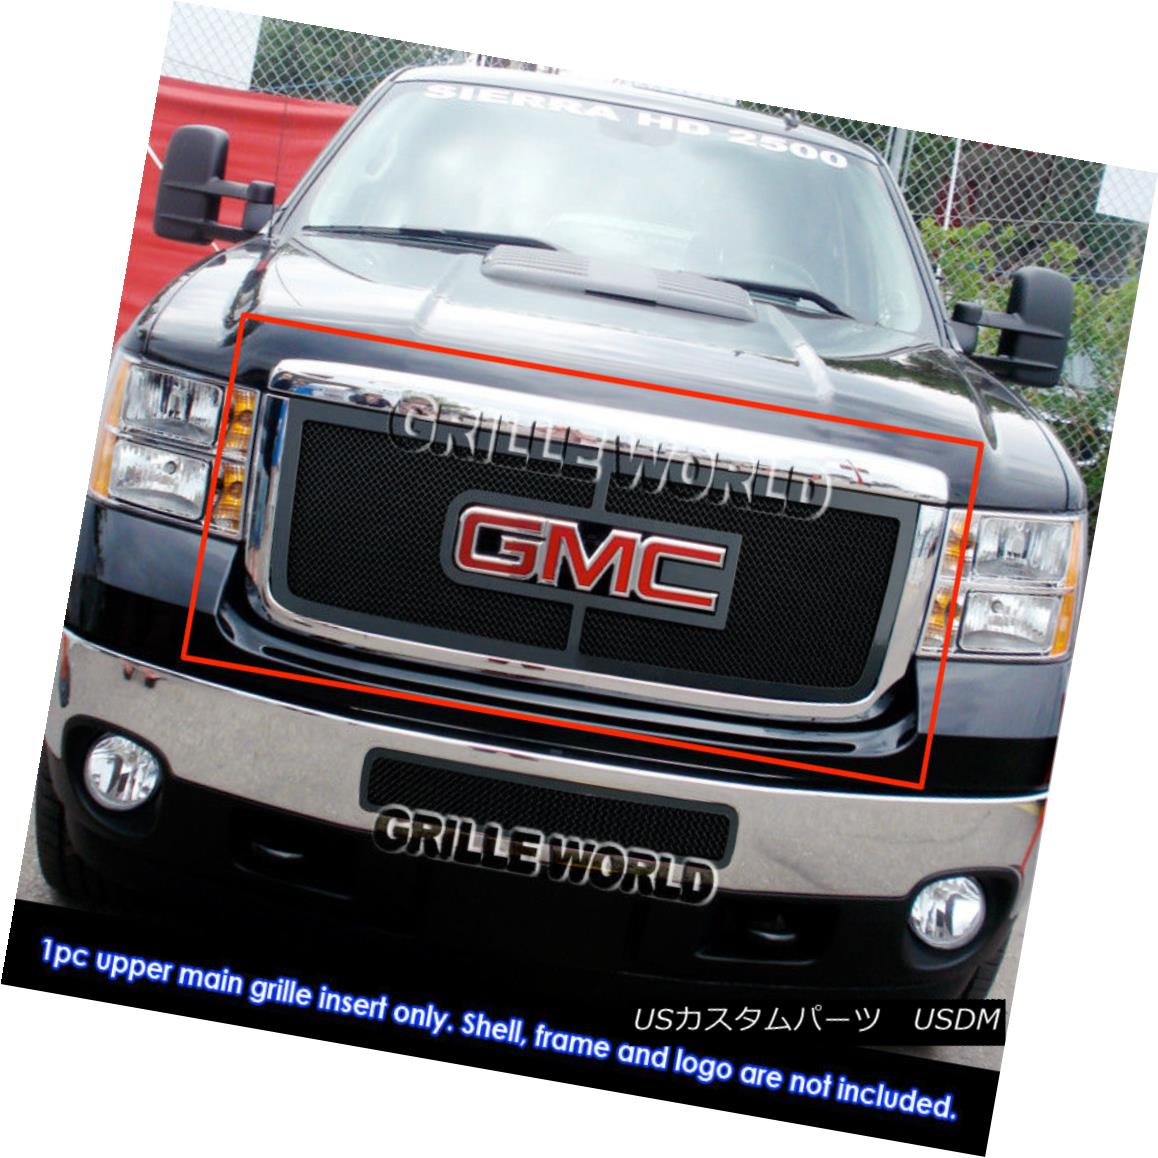 グリル For 2011-2014 GMC Sierra 2500HD/3500HD Black Stinless Steel Mesh Grille Grill 2011-2014 GMC Sierra 2500HD / 3500HDブラックステンレスメッシュグリルグリル